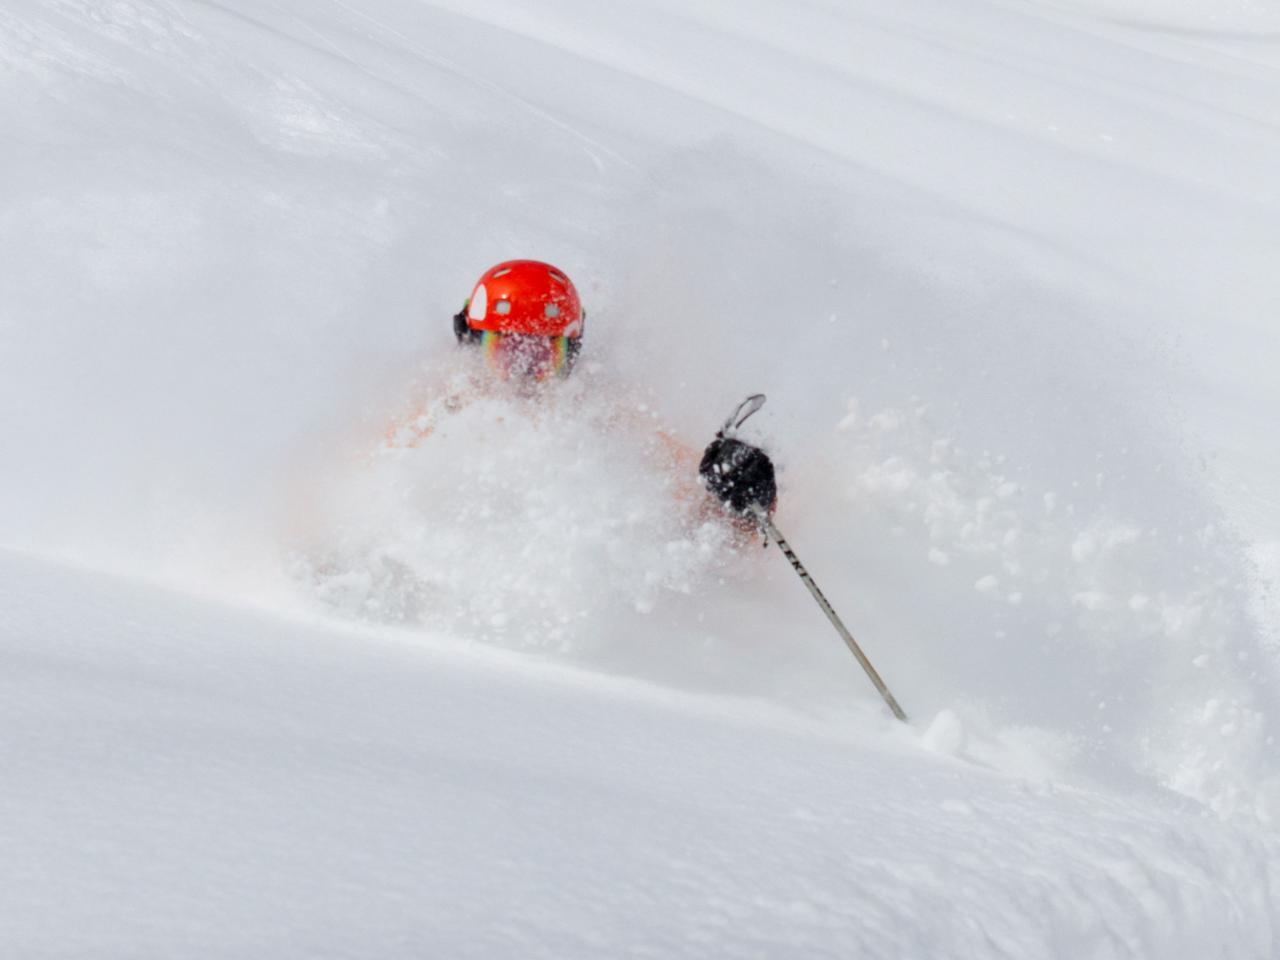 Peter Cullen skis deep powder at Mike Wiegele Heliskiing Resort in BC Canada.